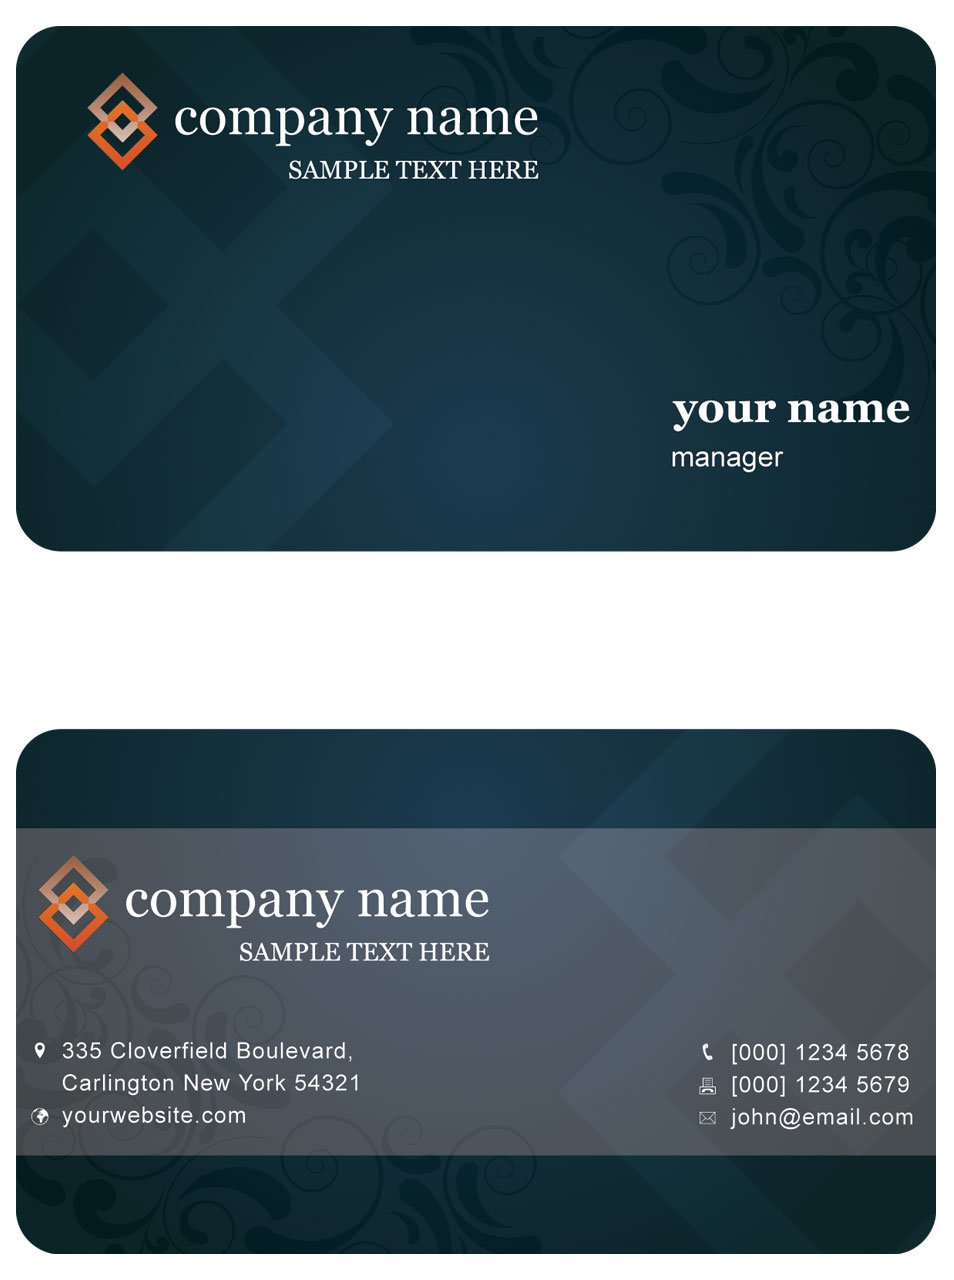 Gray Business Card Template